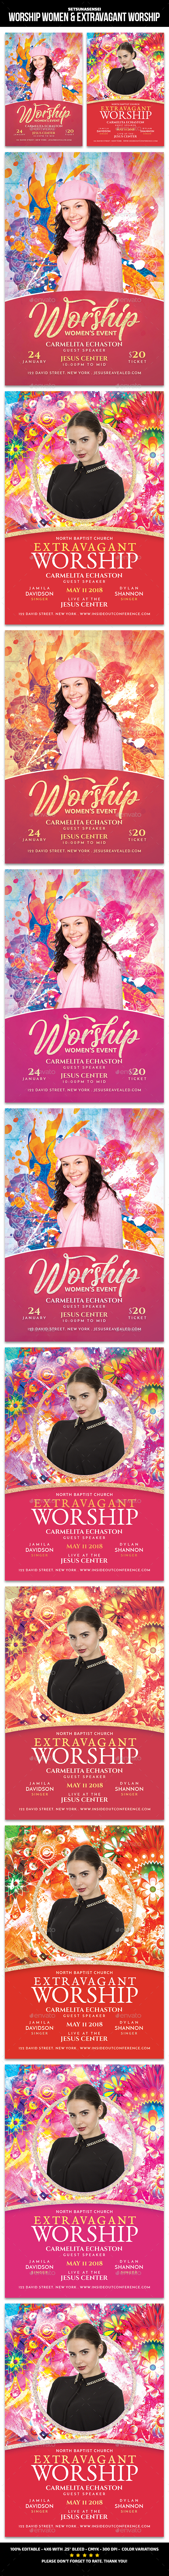 Worship Women & Extravagant Worship Flyer - Church Flyers